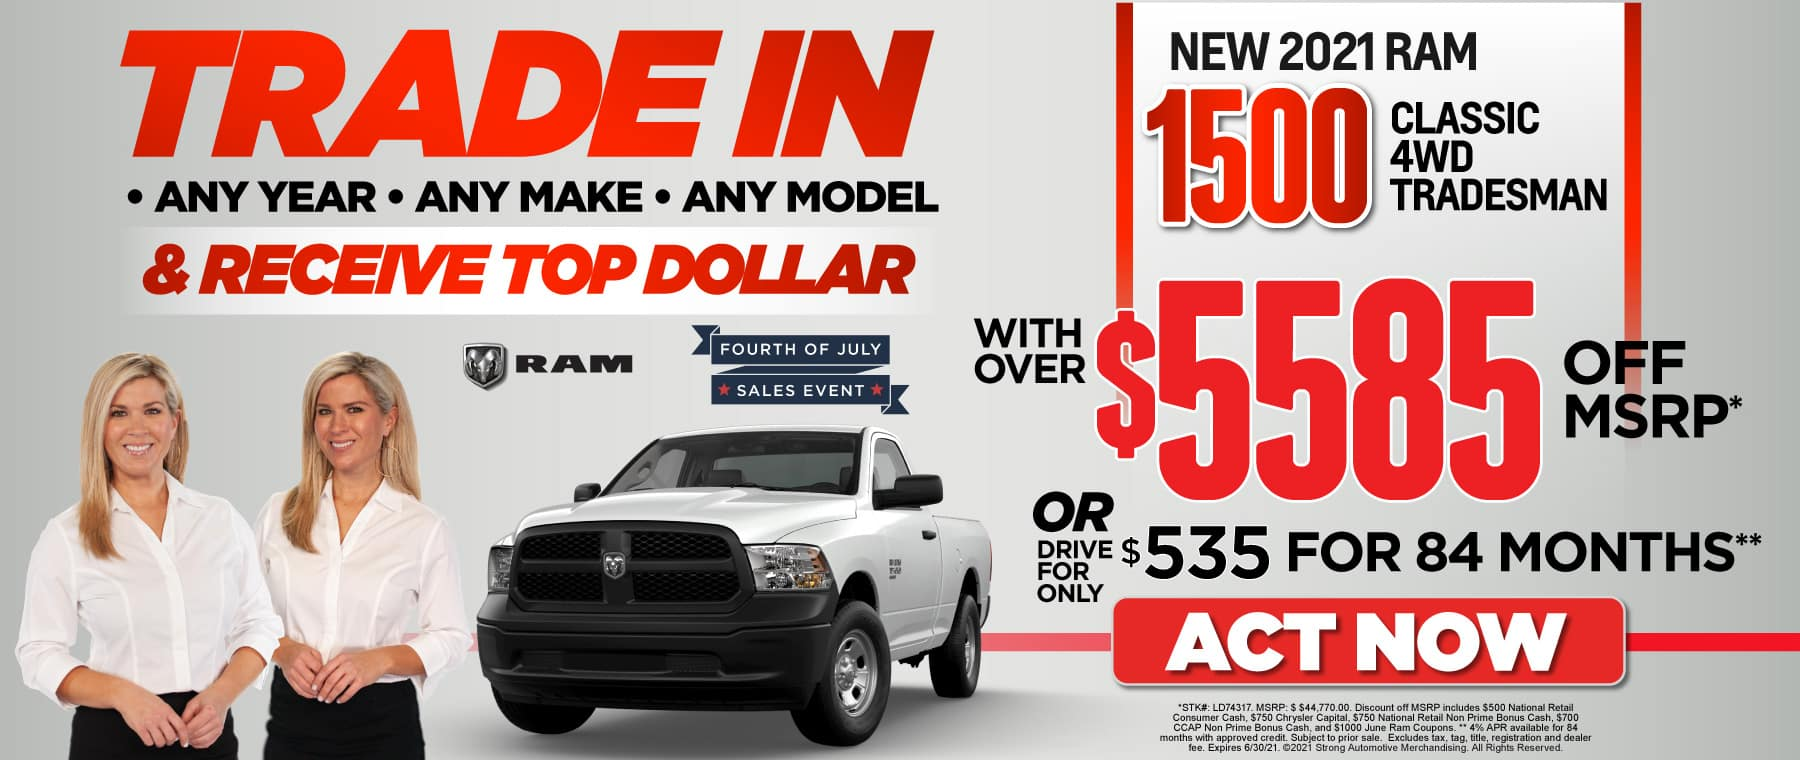 2021 Ram 1500: over $5585 off MSRP or $535 for 84 Months — ACT